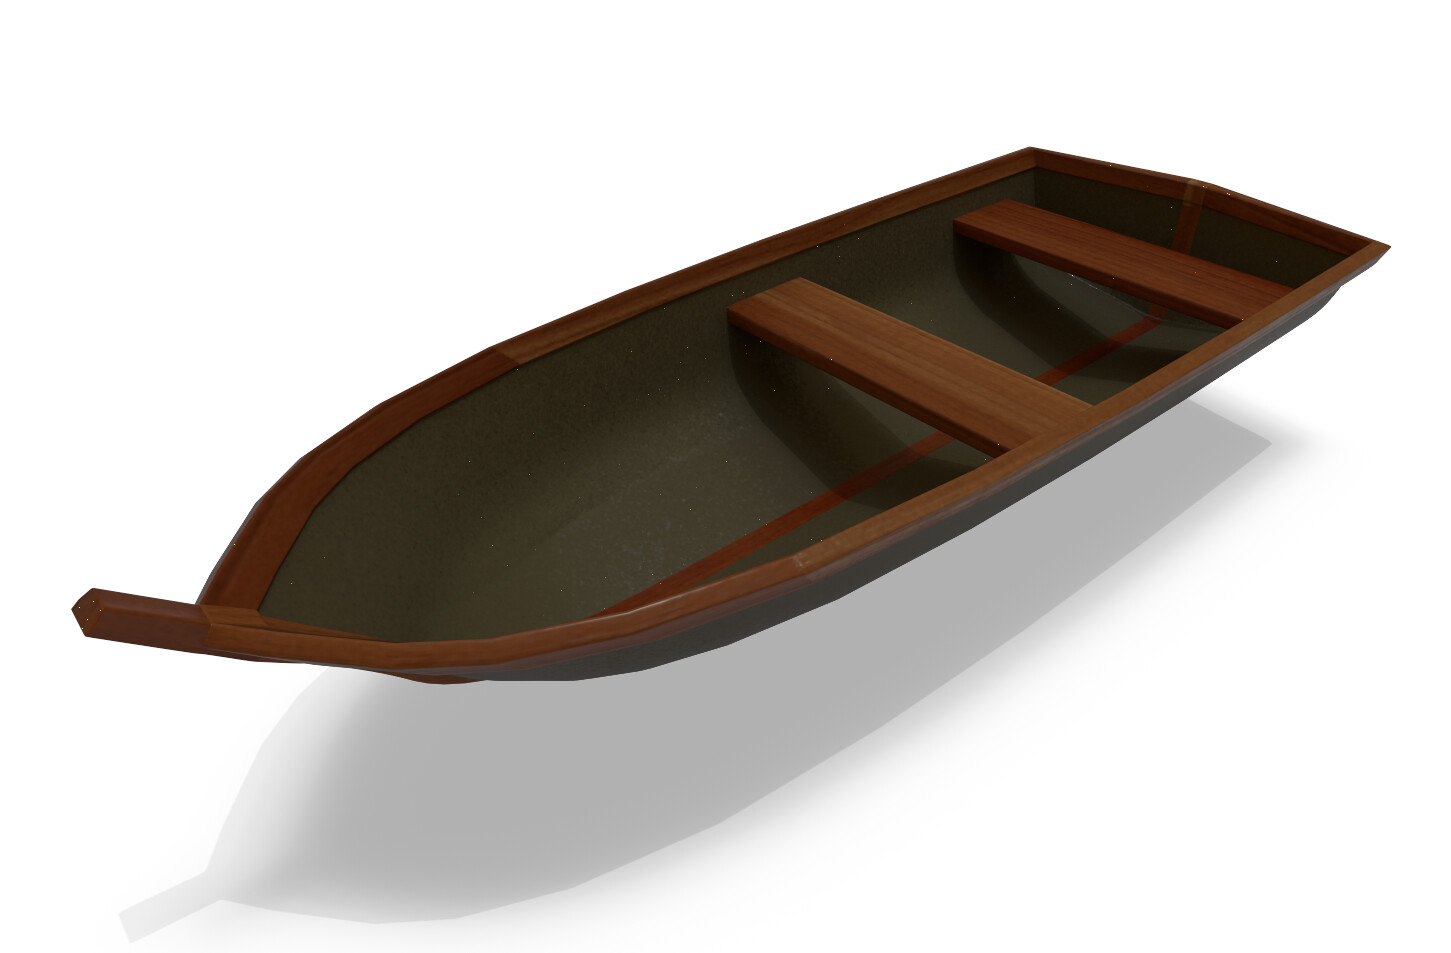 Joseph moniz rowboat001a